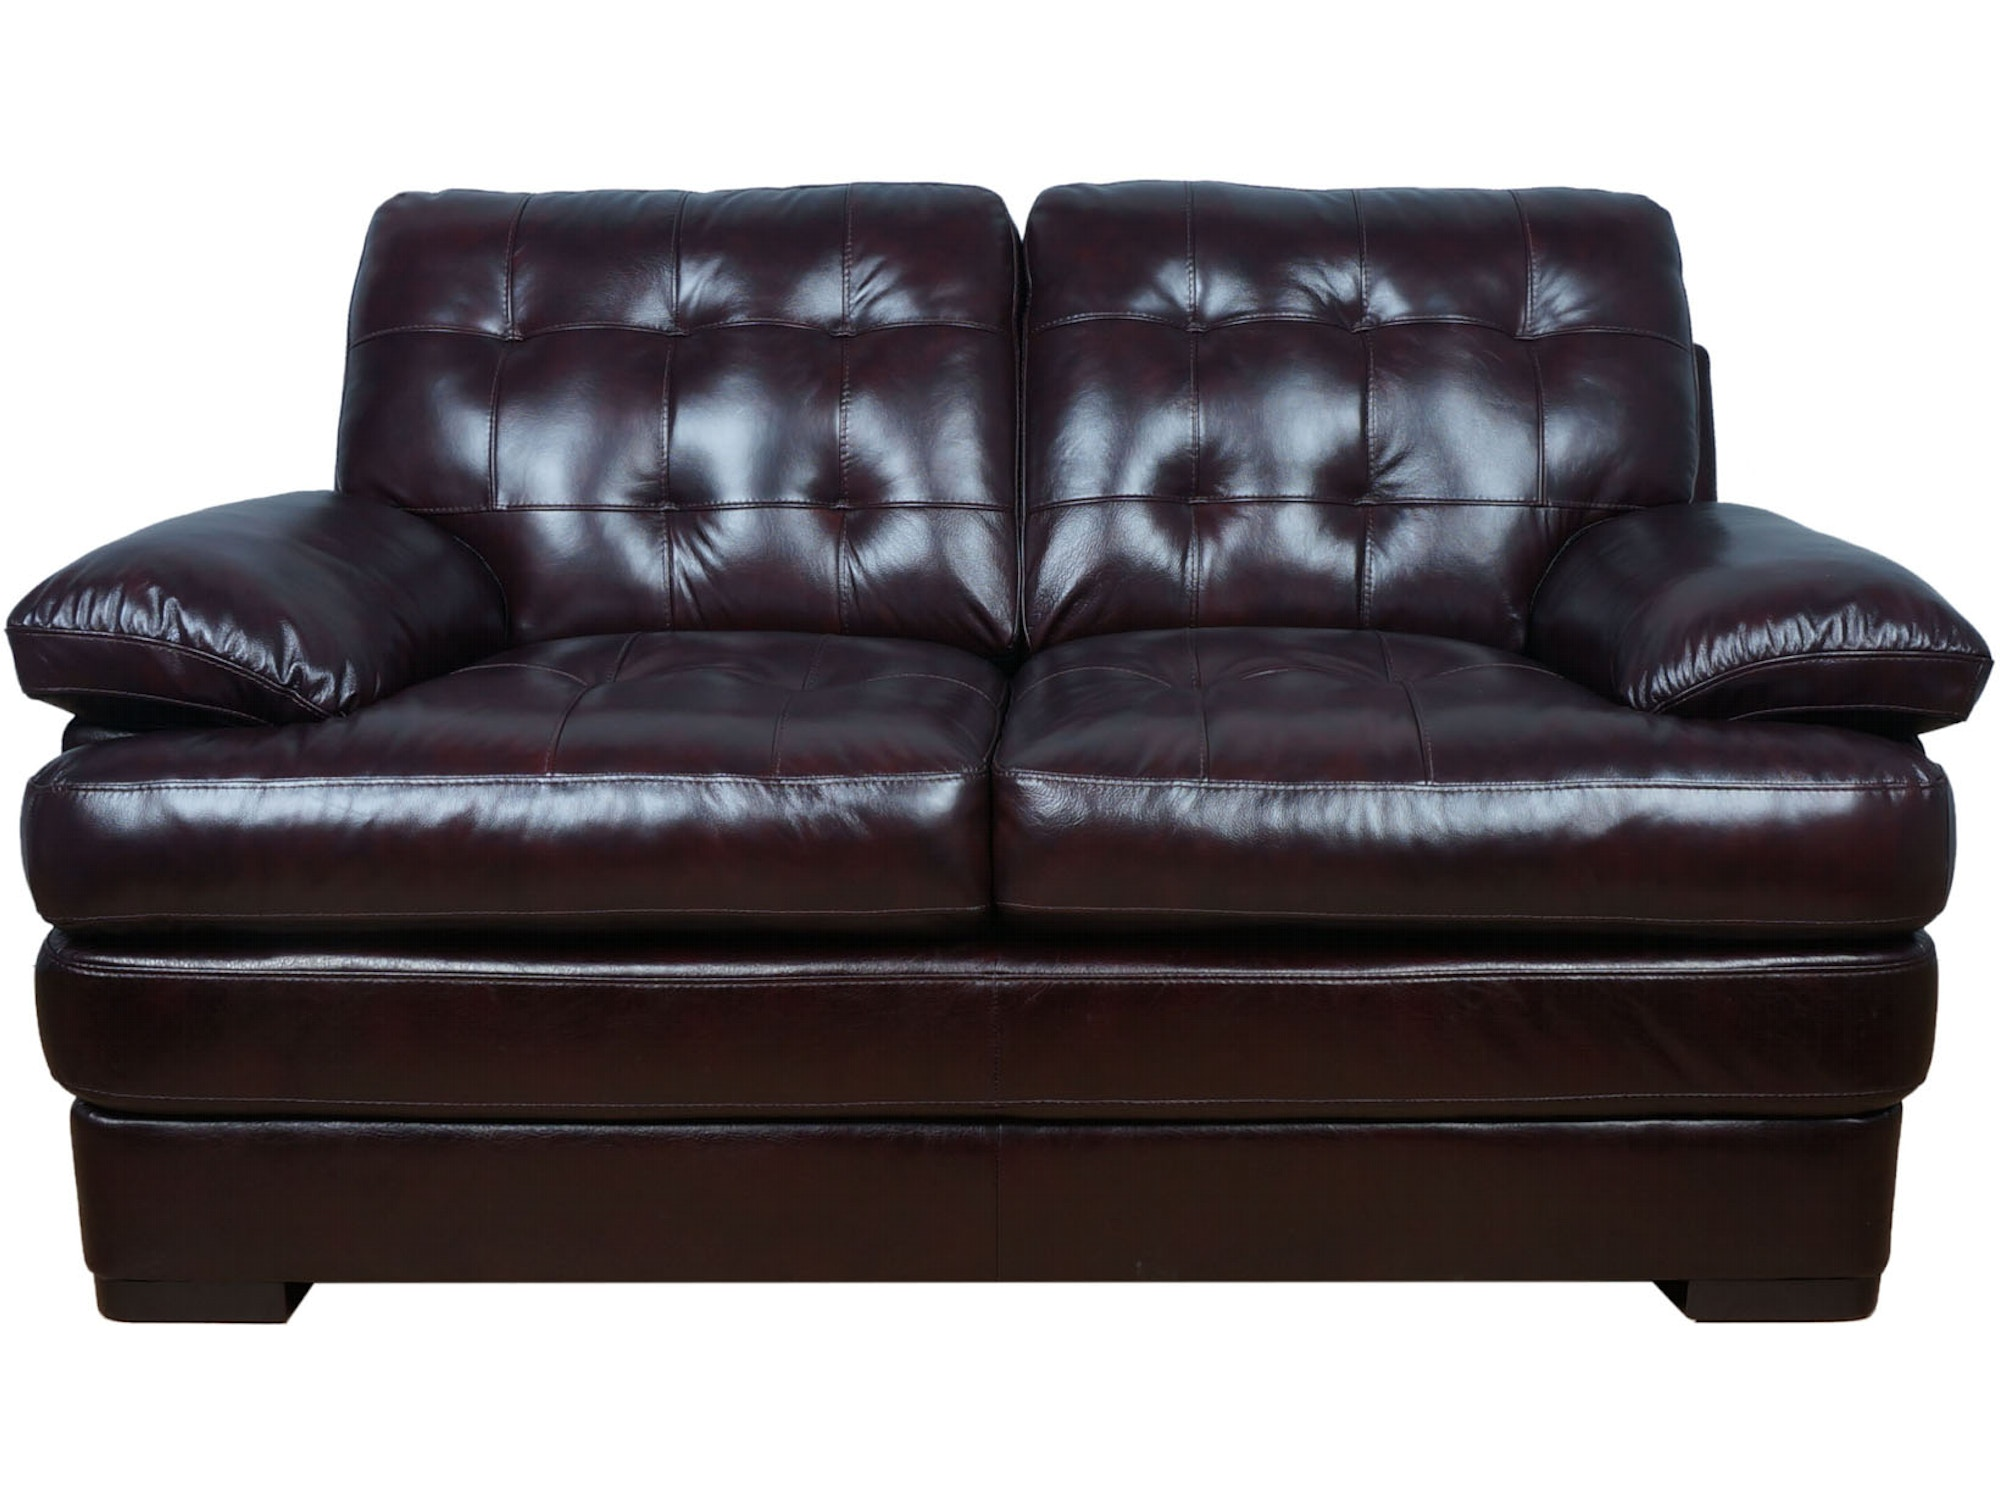 Salerno Leather Loveseat 053644